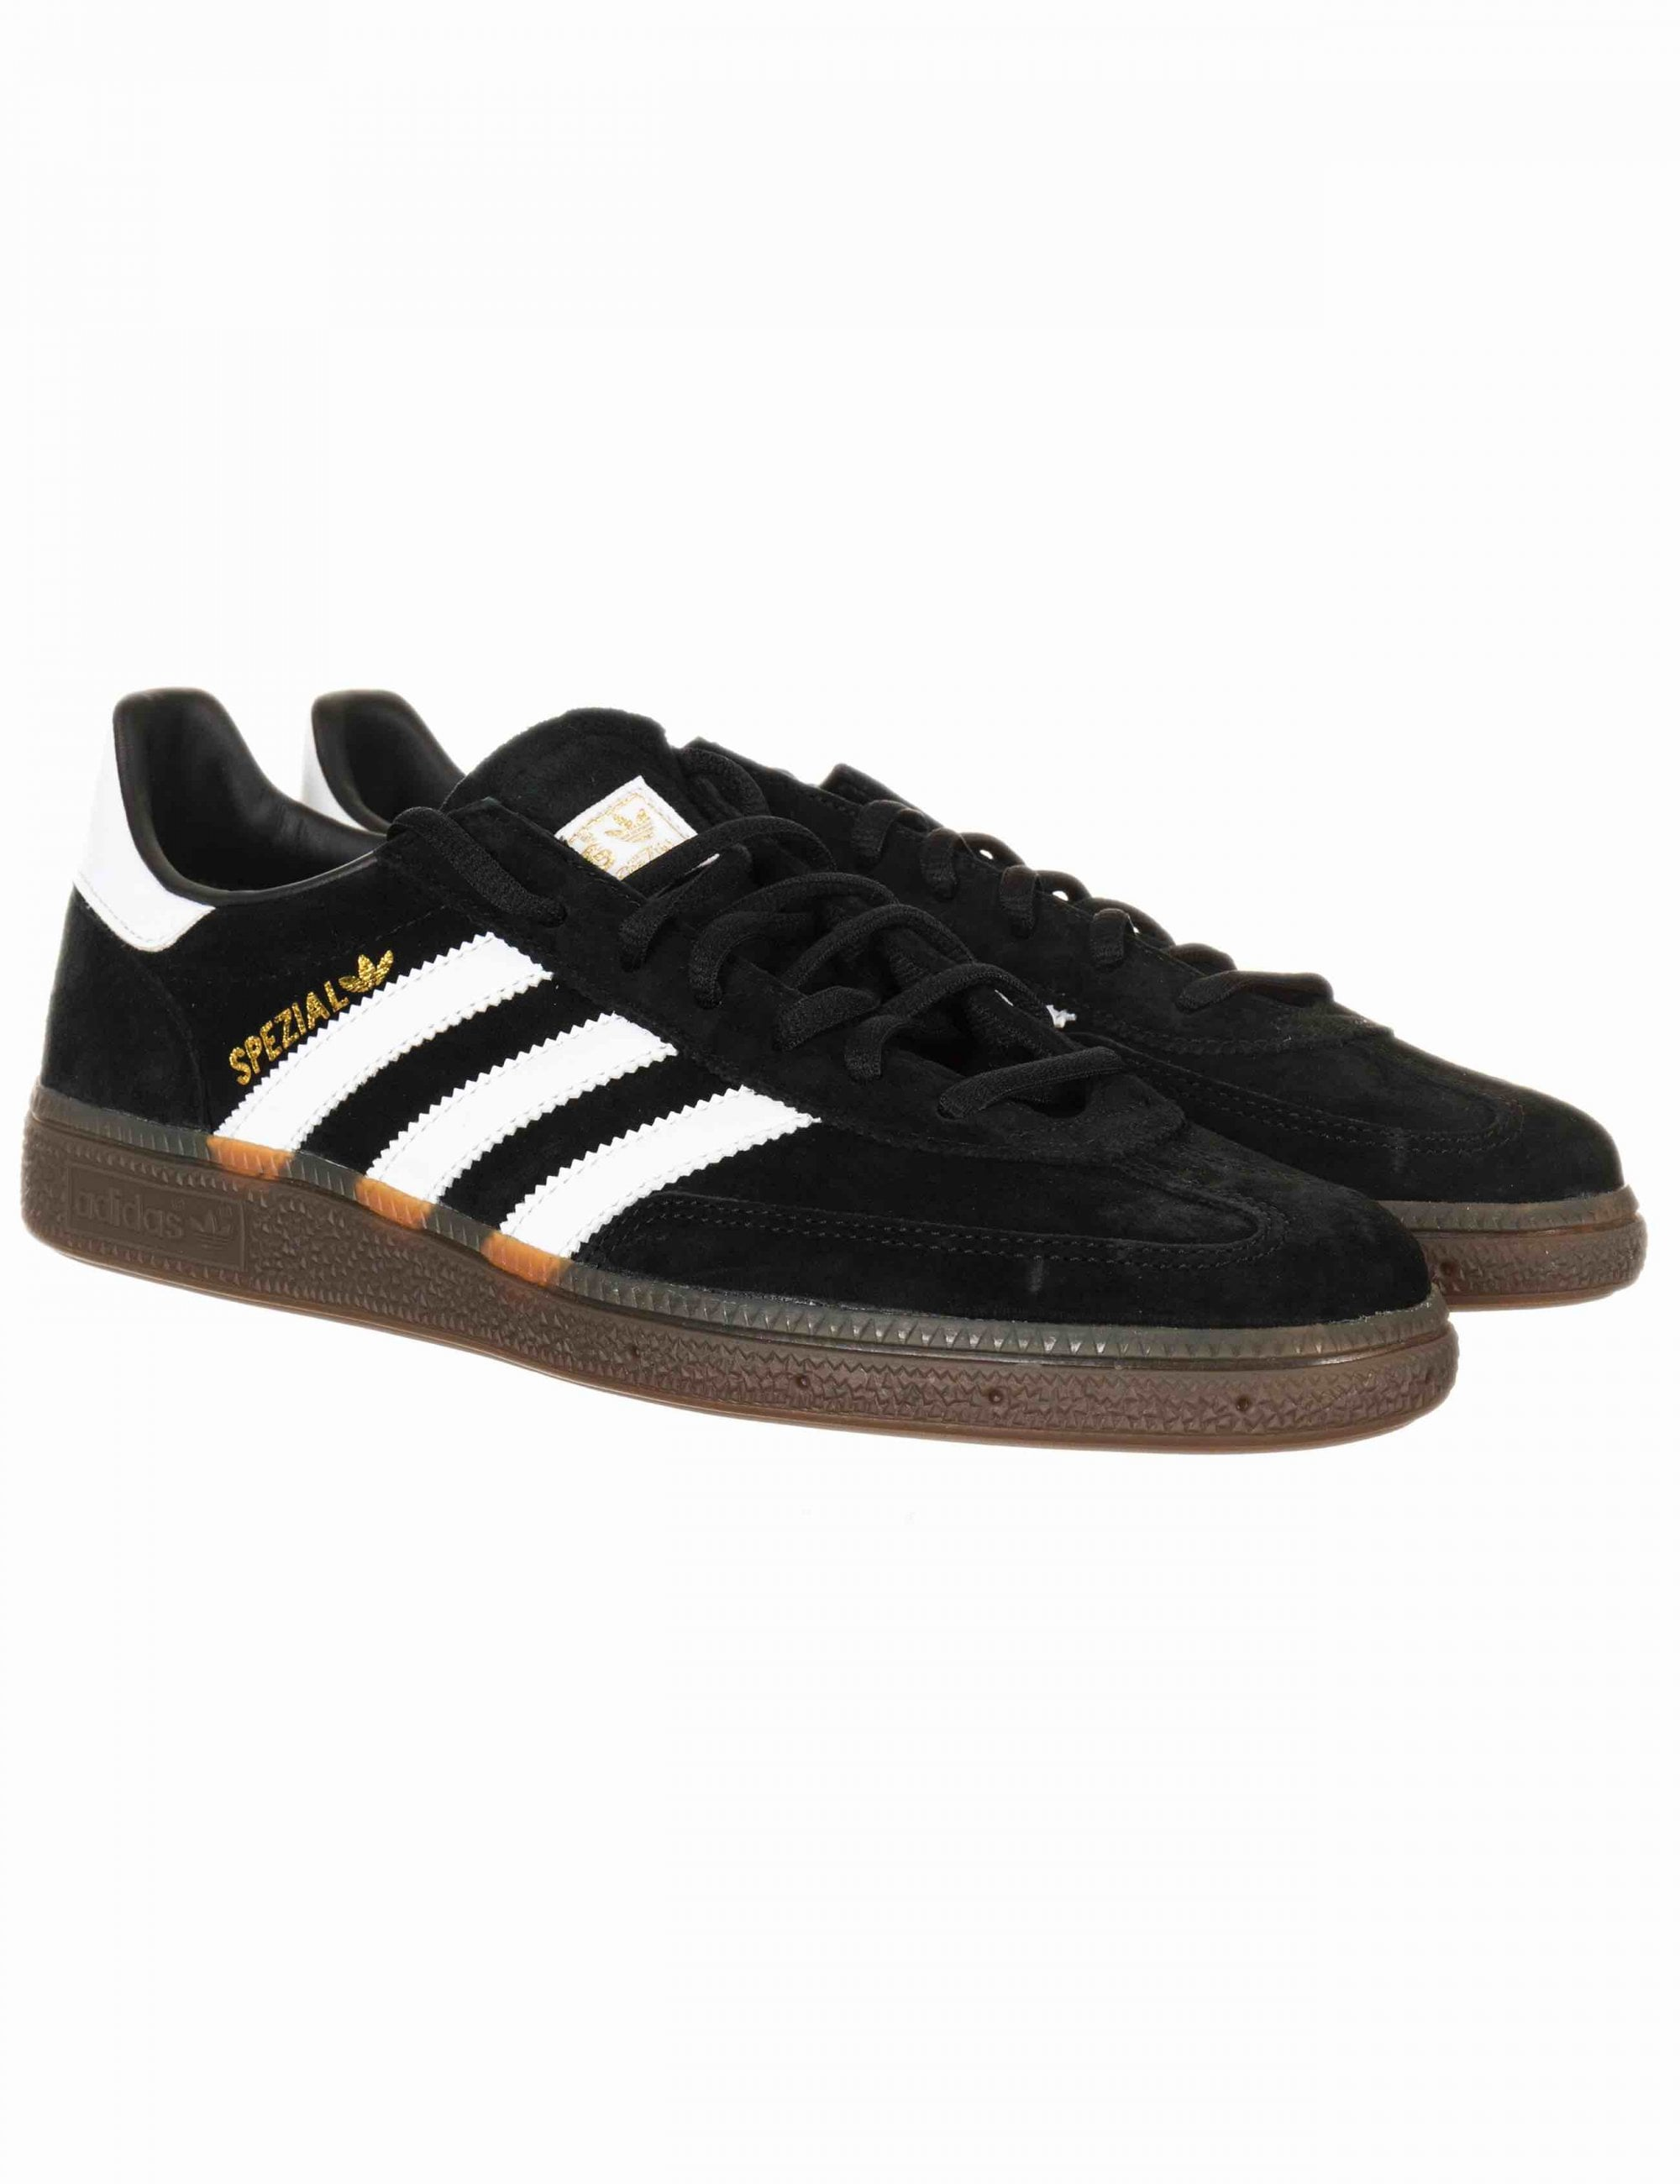 Escabullirse Física Brutal  Adidas Originals Handball Spezial Trainers - Core Black/Gum - Footwear from  Fat Buddha Store UK